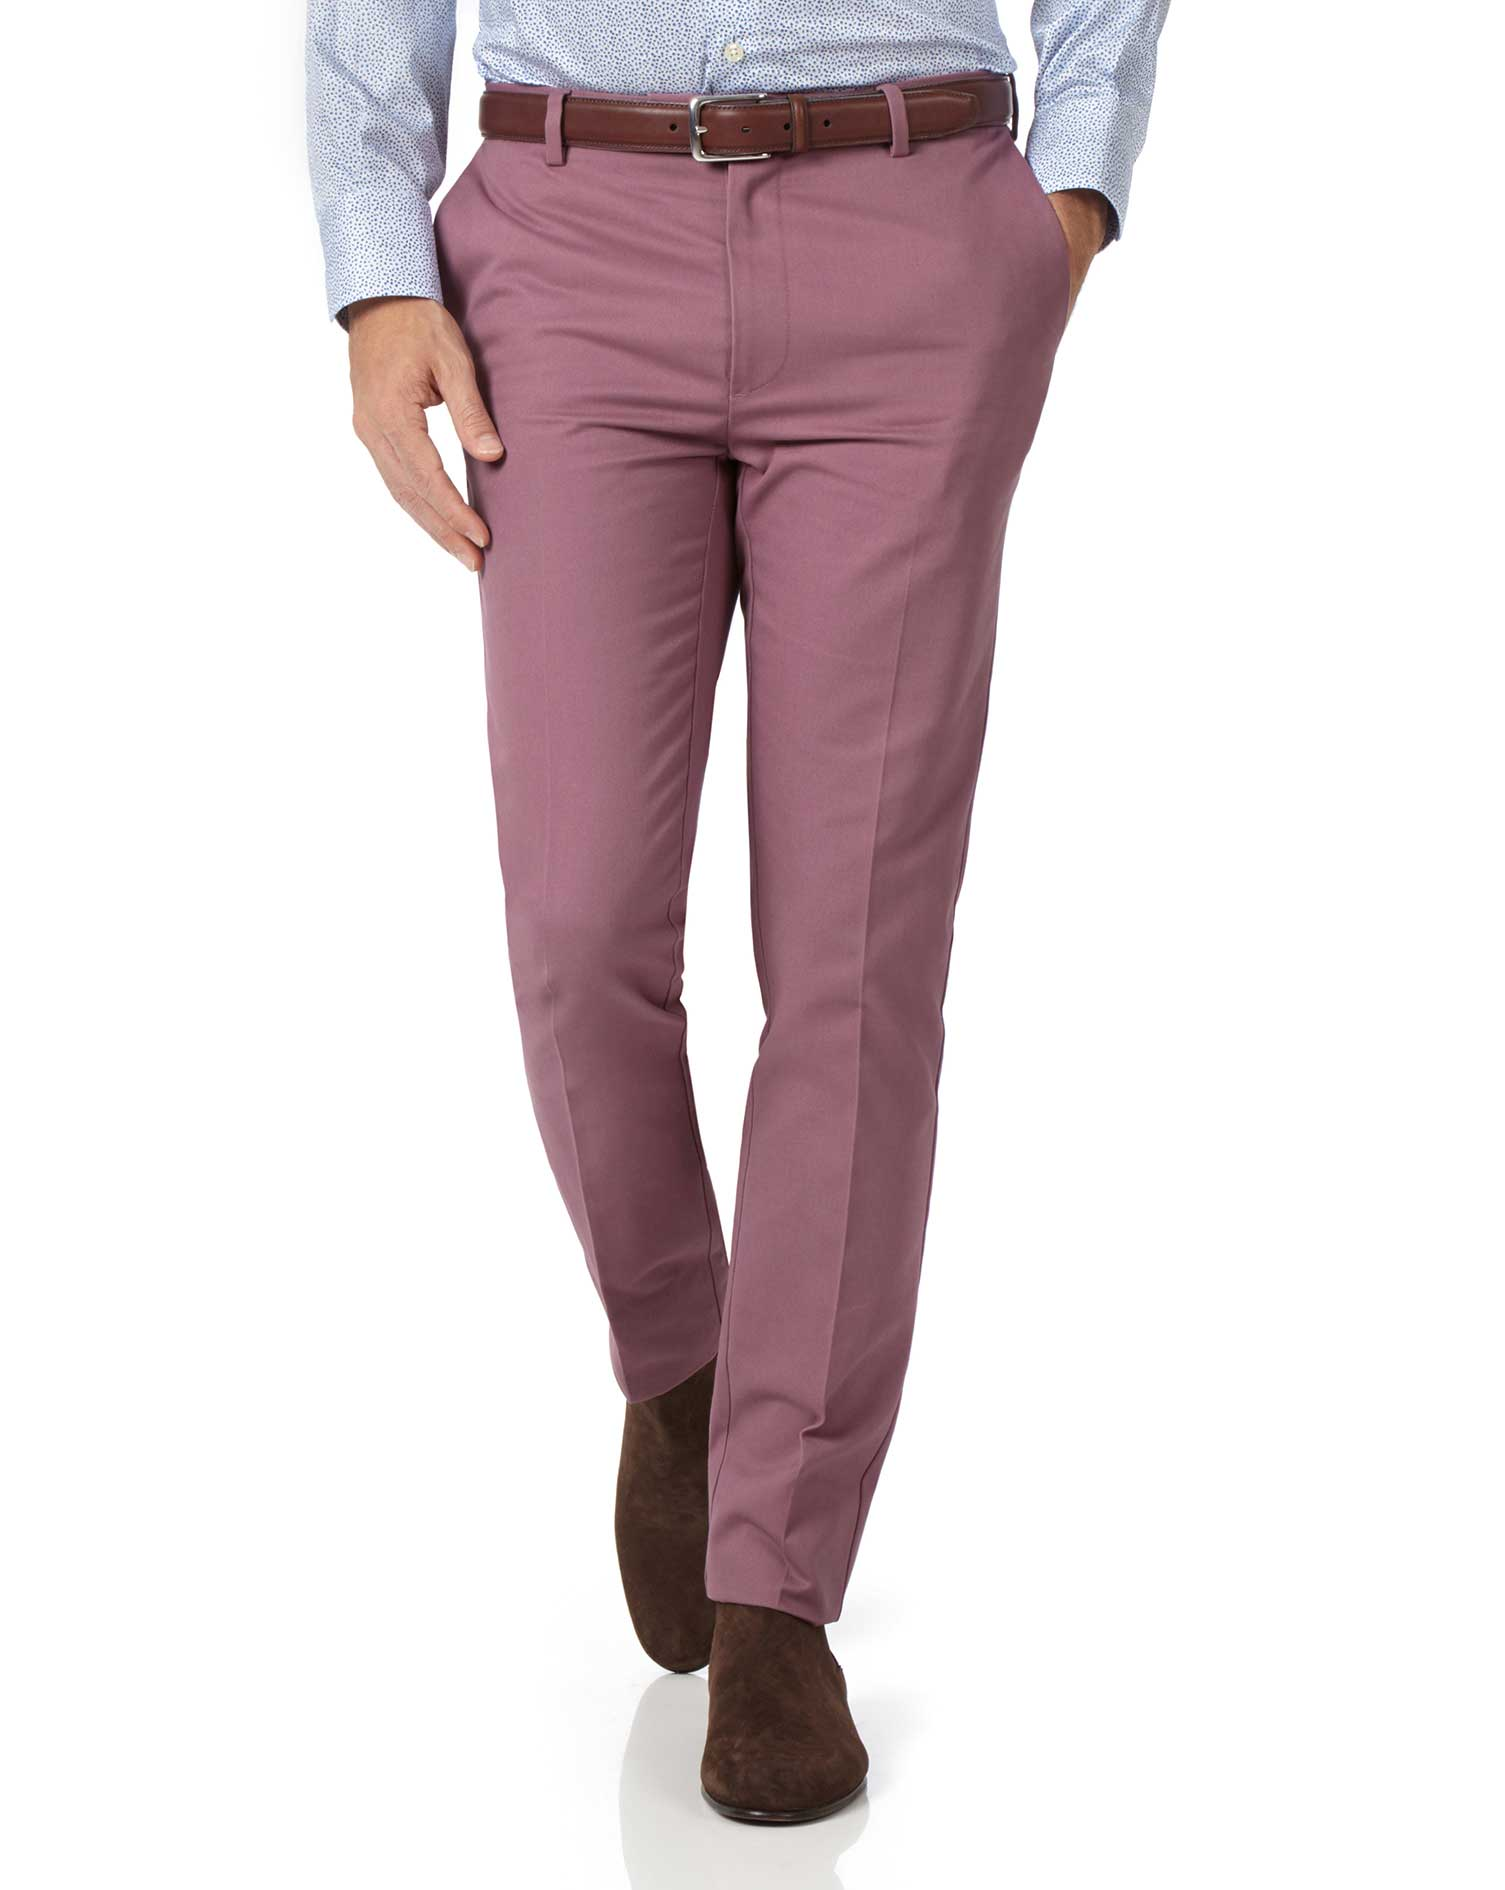 light pink slim fit flat front non-iron cotton chino pants size w34 l38 by charles tyrwhitt